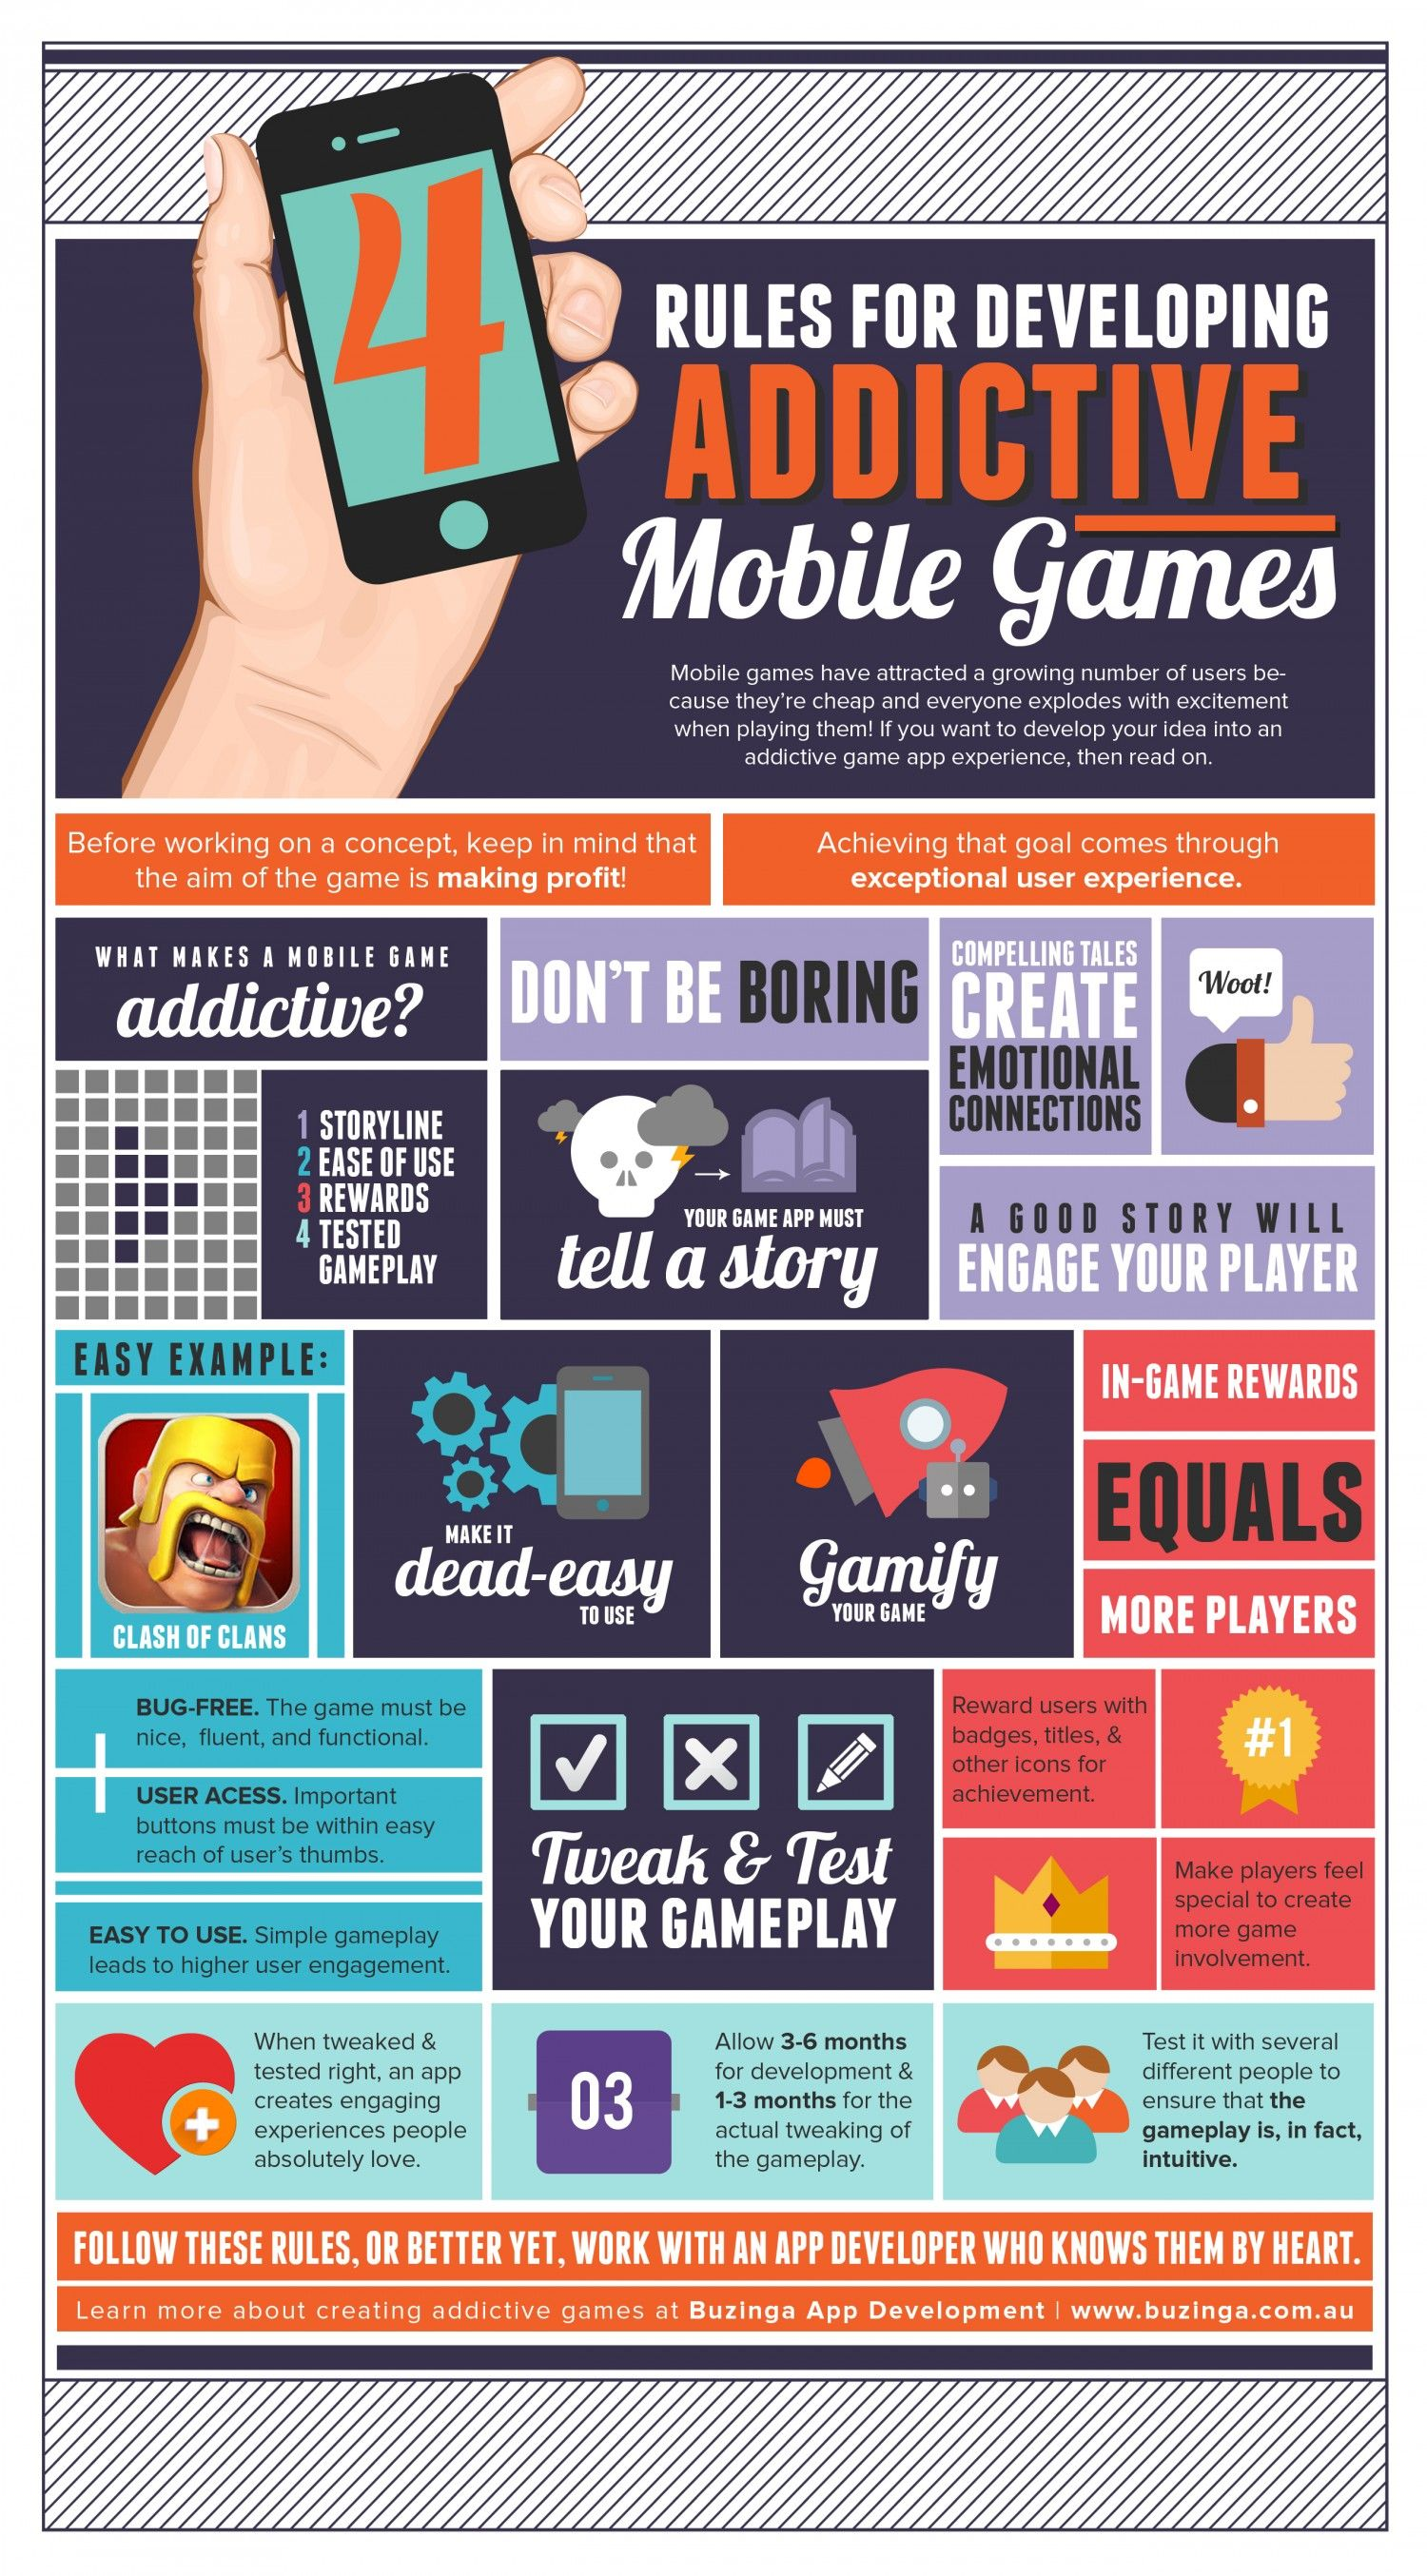 Rules For Developing Addictive Mobile Games Infographic